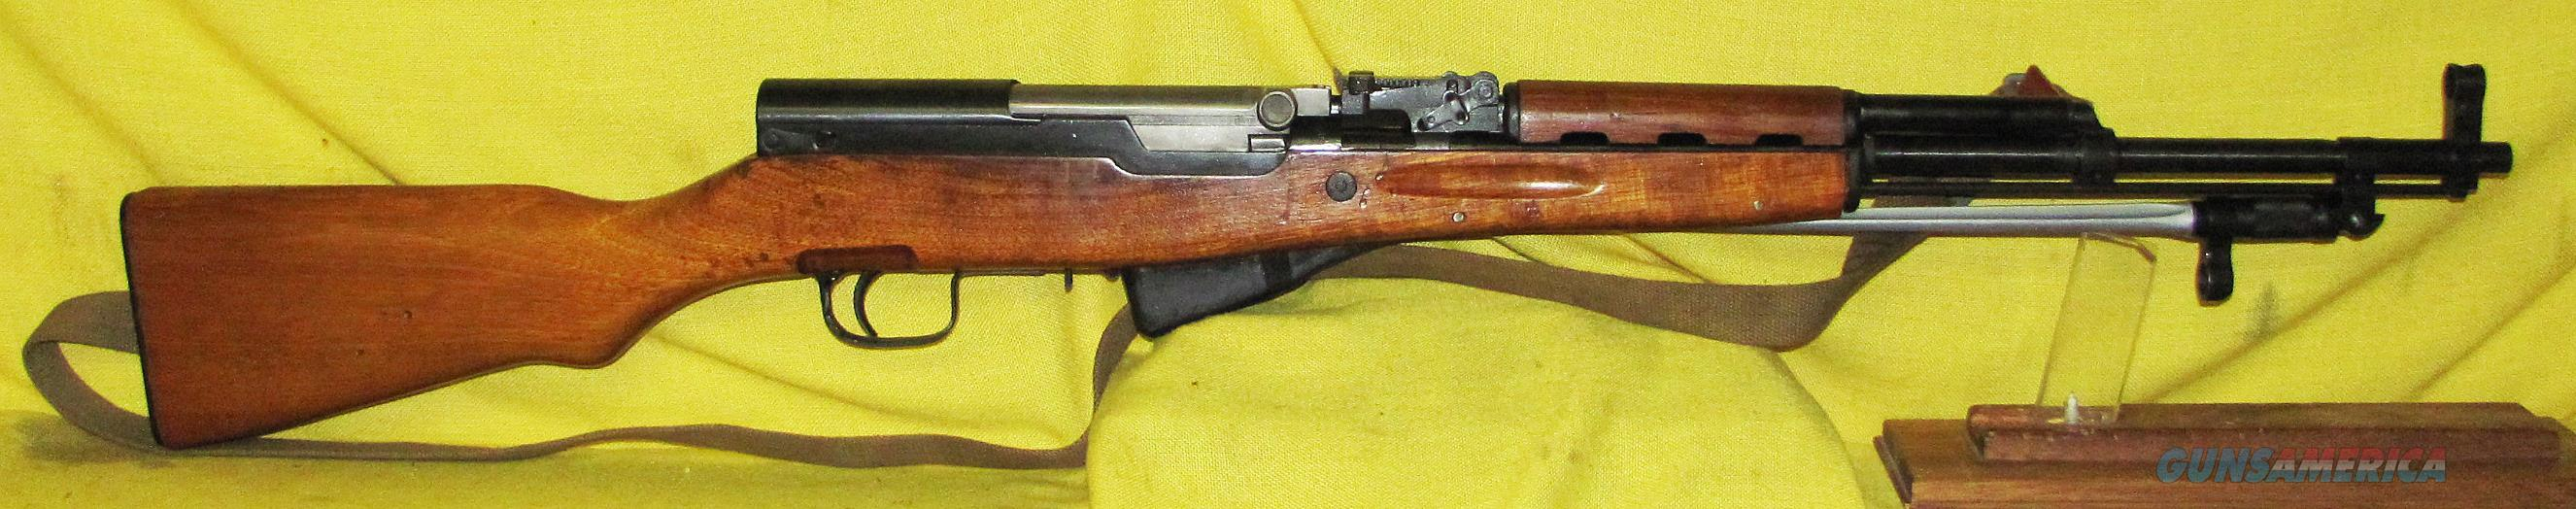 NORINCO SKS  Guns > Rifles > Norinco Rifles